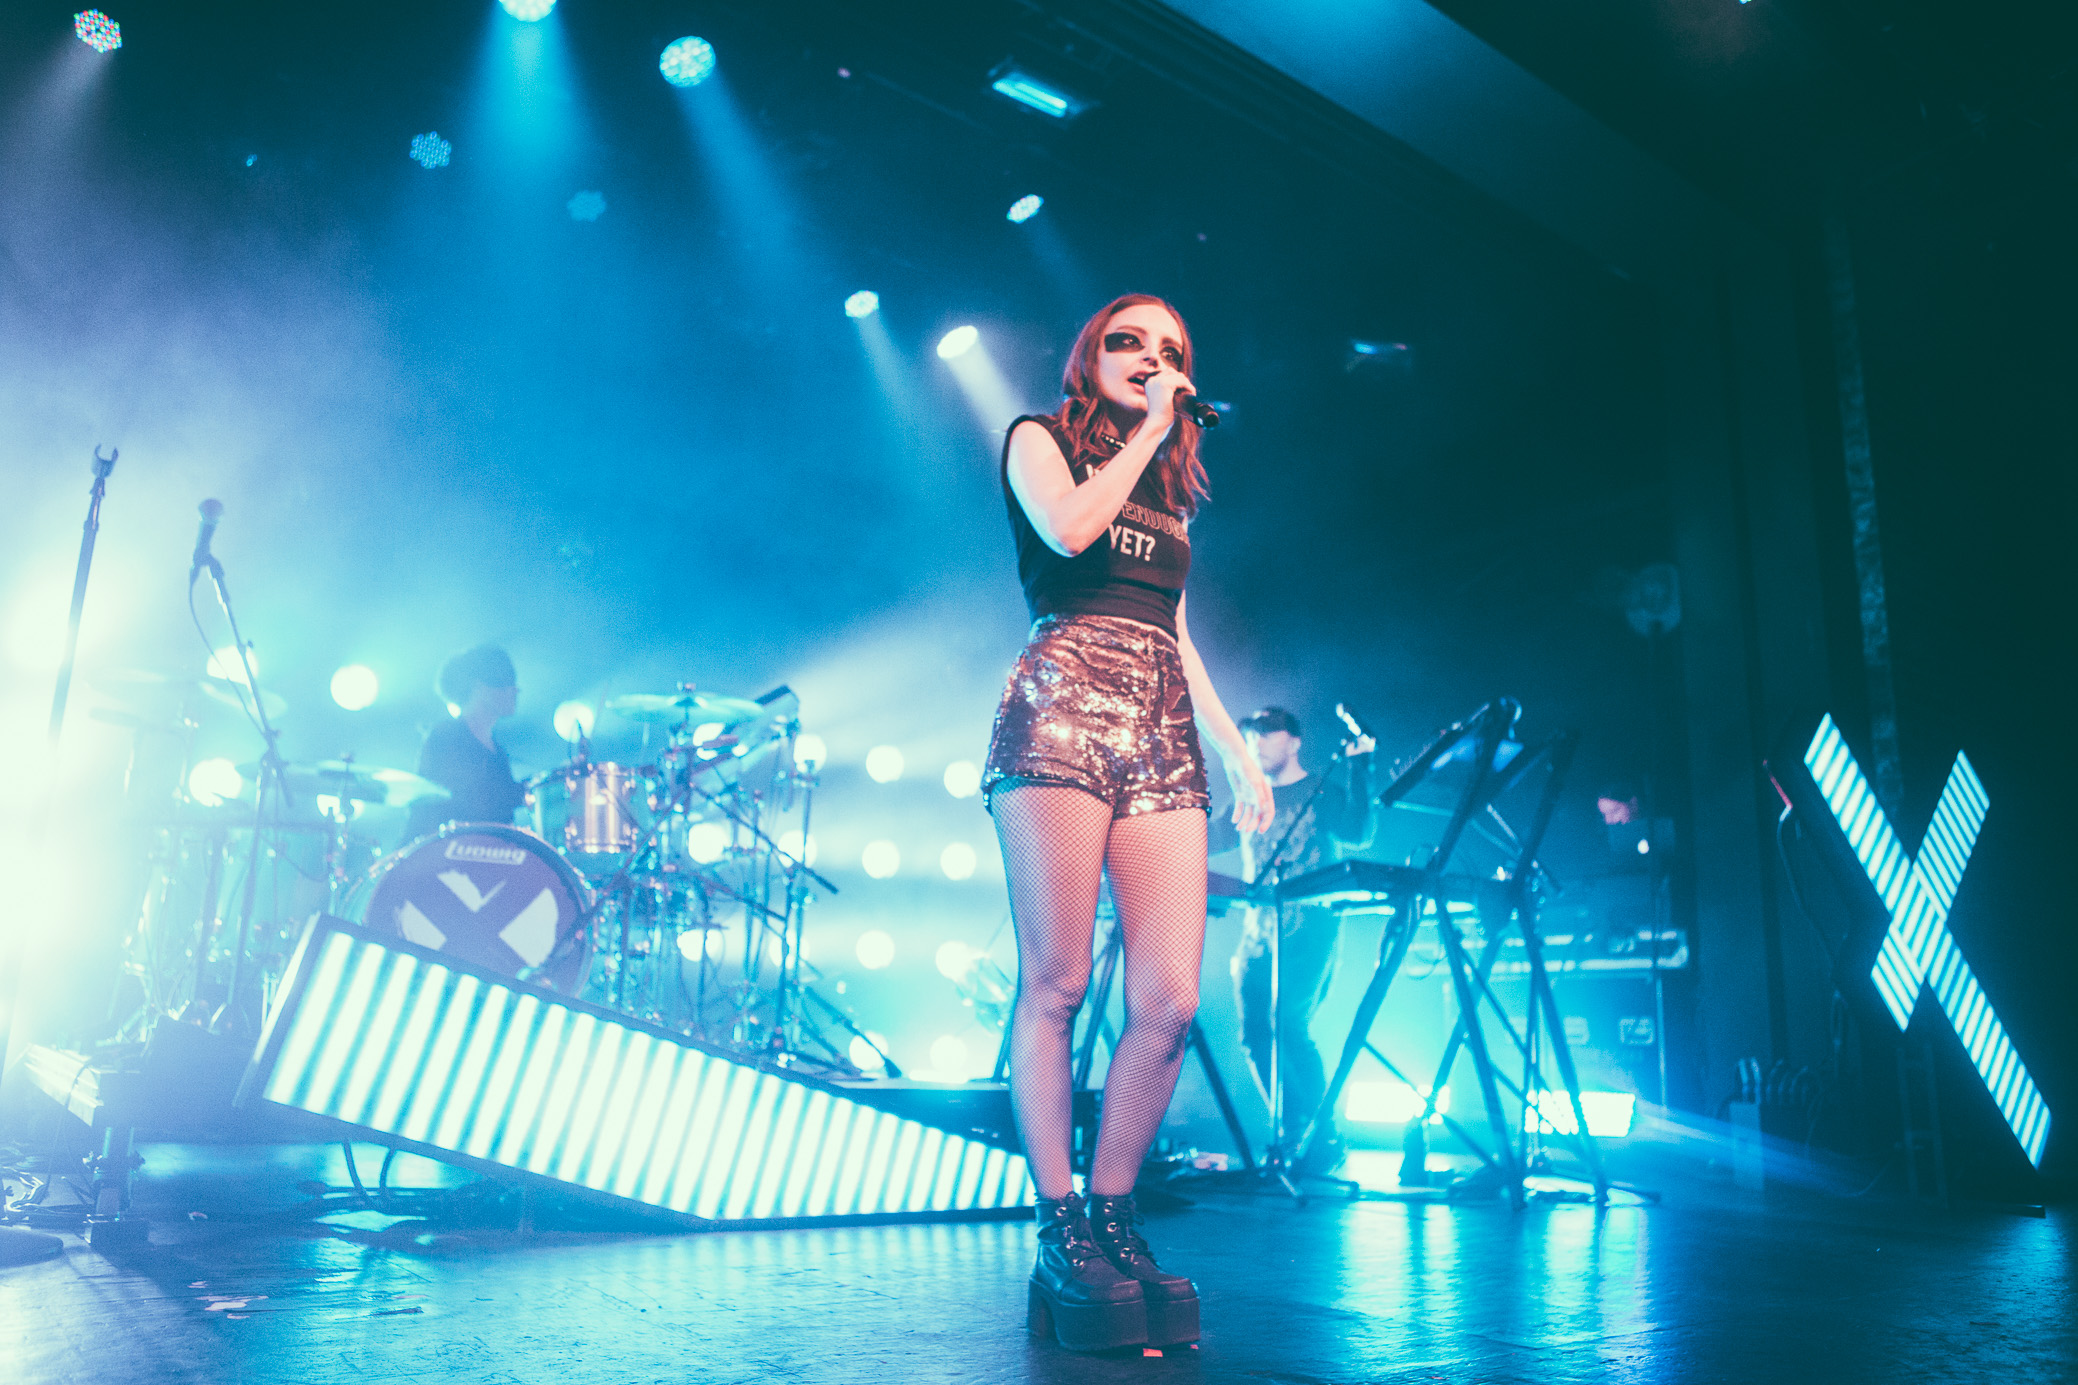 Lauren Mayberry of CHVRCHES performs in concert at Iron City in Birmingham, Alabama on October 8th, 2018. (Photo by David A. Smith / DSmithScenes)